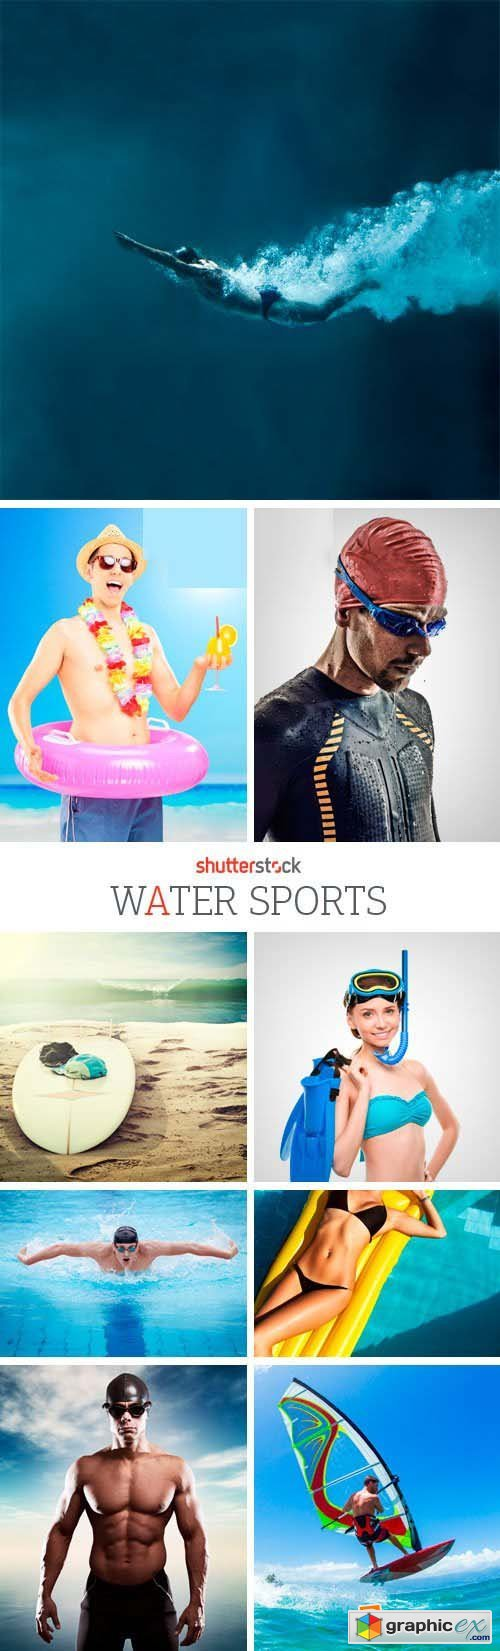 Amazing SS - Water Sports, 25xJPGs